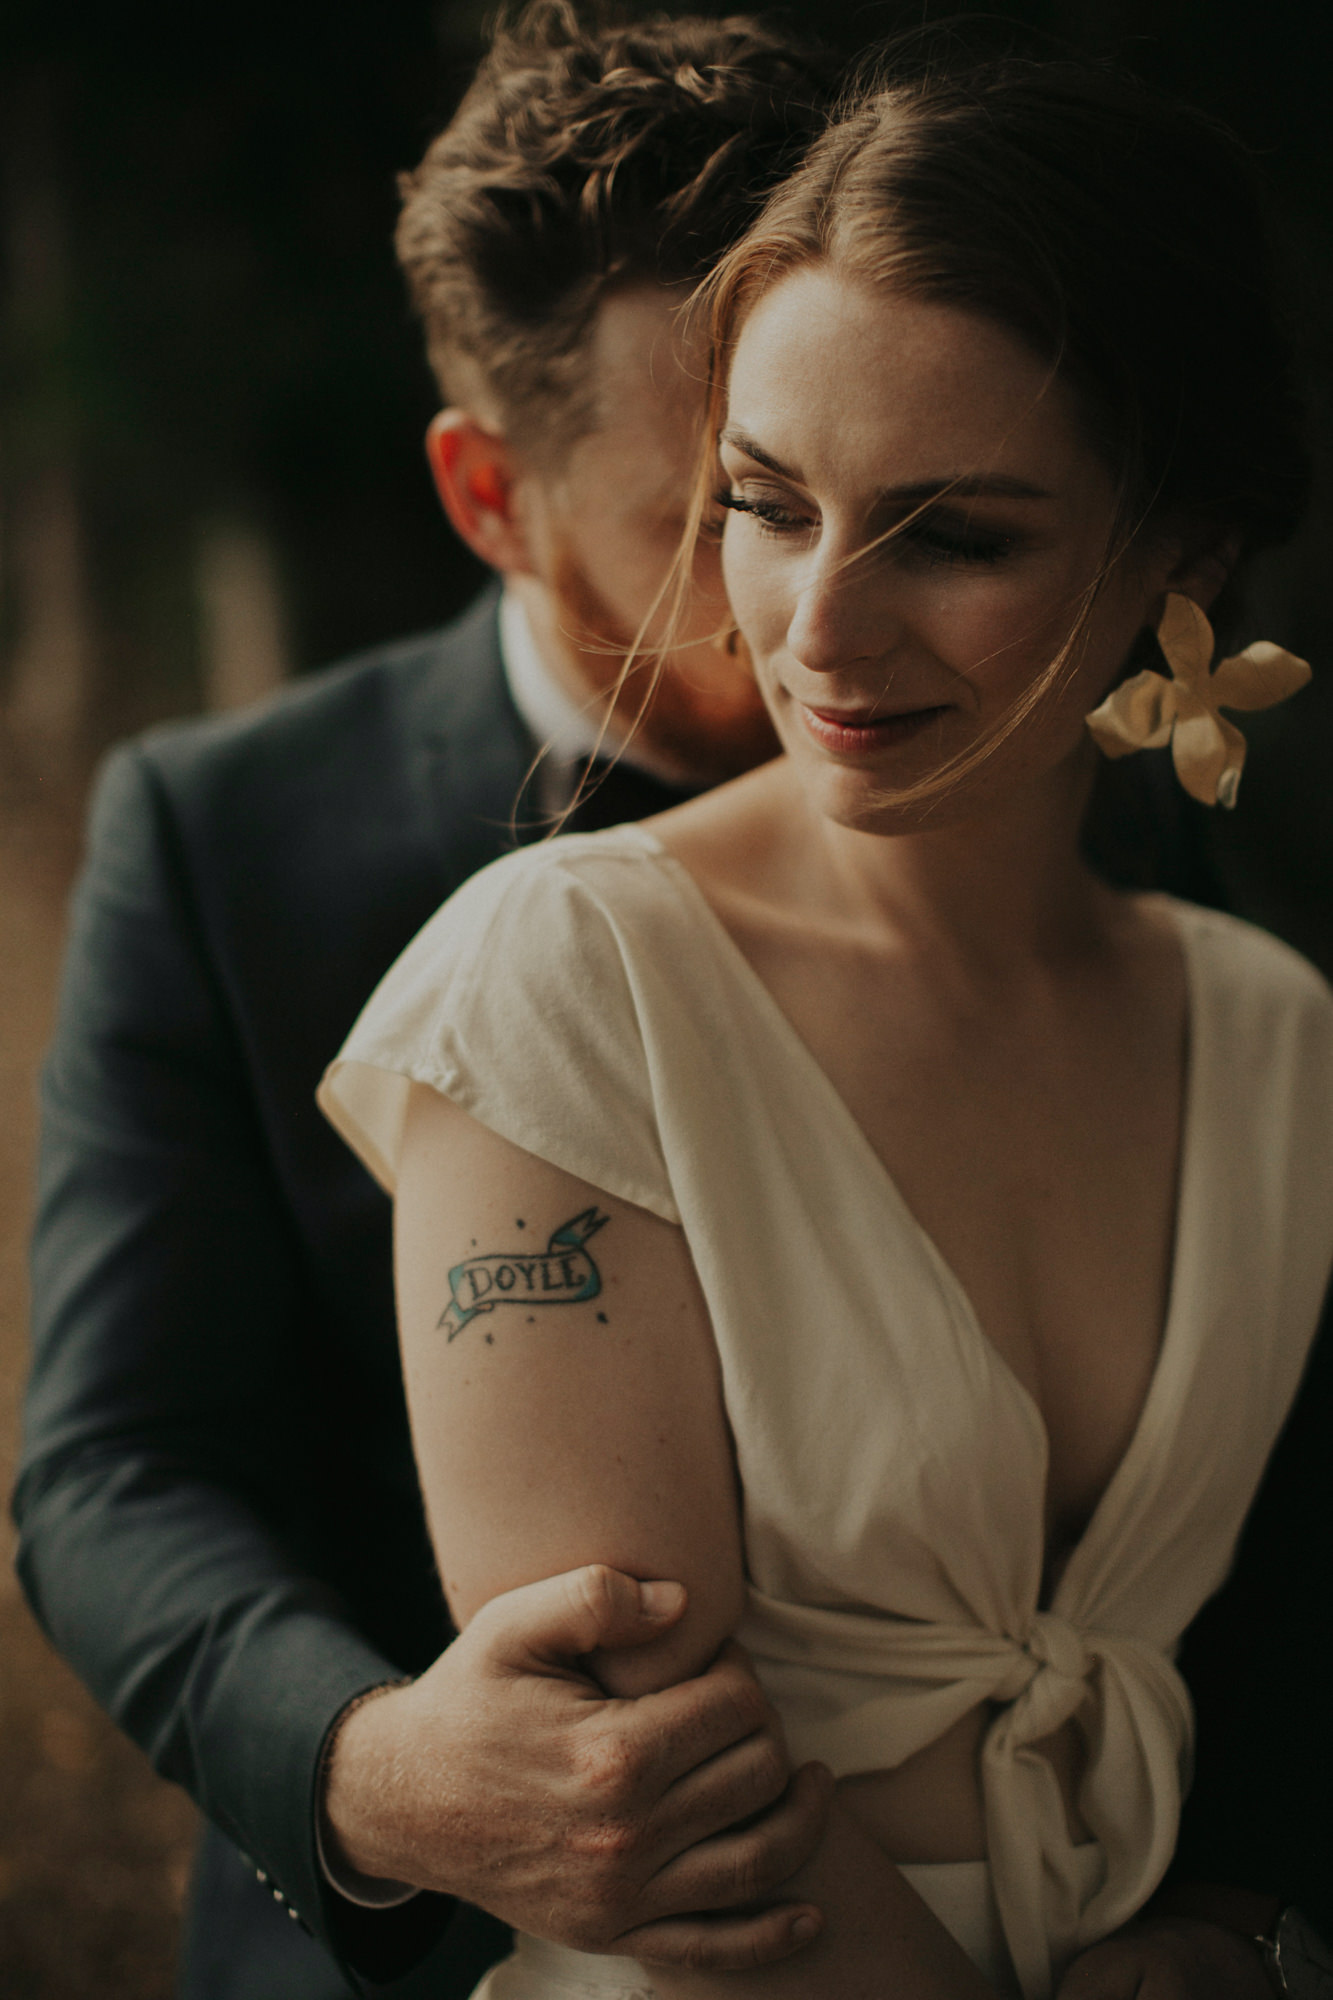 Couple portrait, bride with tattoo- photo by Dan O'Day